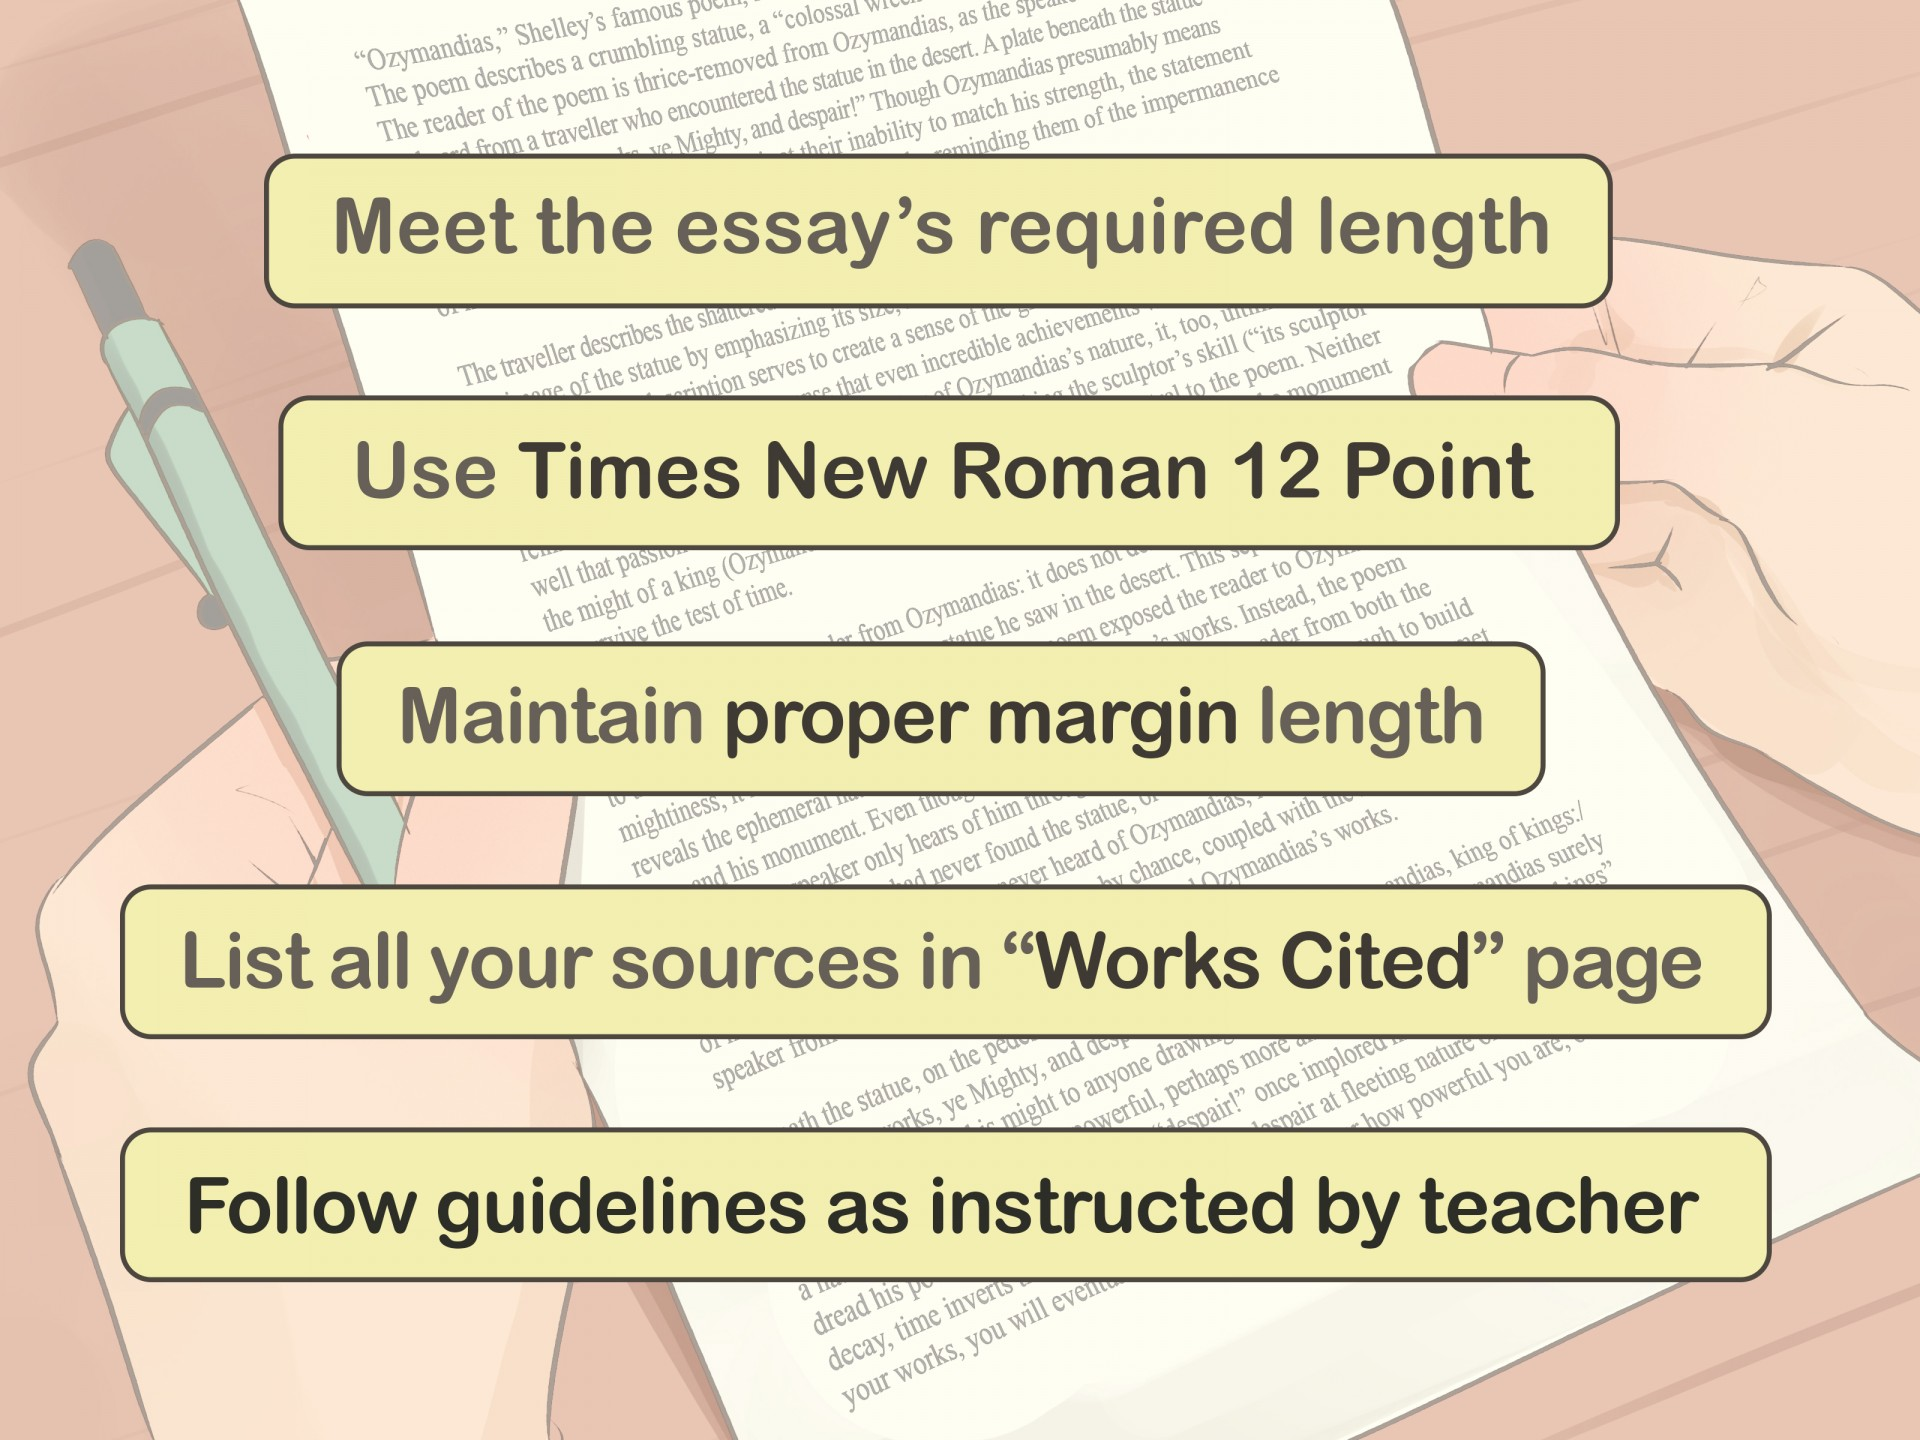 025 Stretch Out An Essay Step Version Example How Do You Beautiful Spell U In English Plural 1920